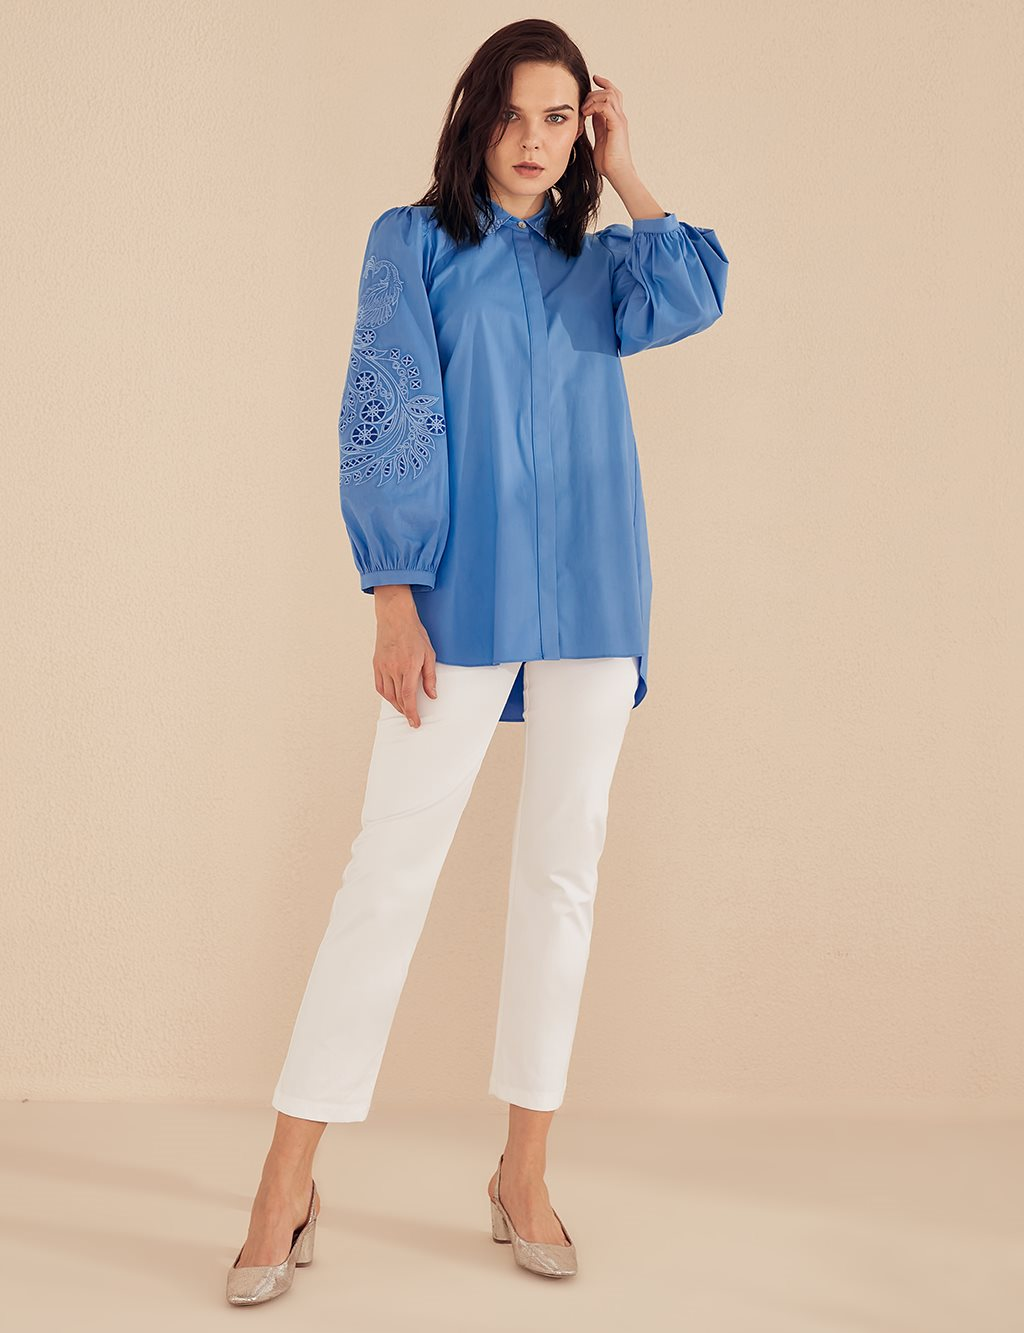 Sleeve Detailed Shirt B20 10046 Blue